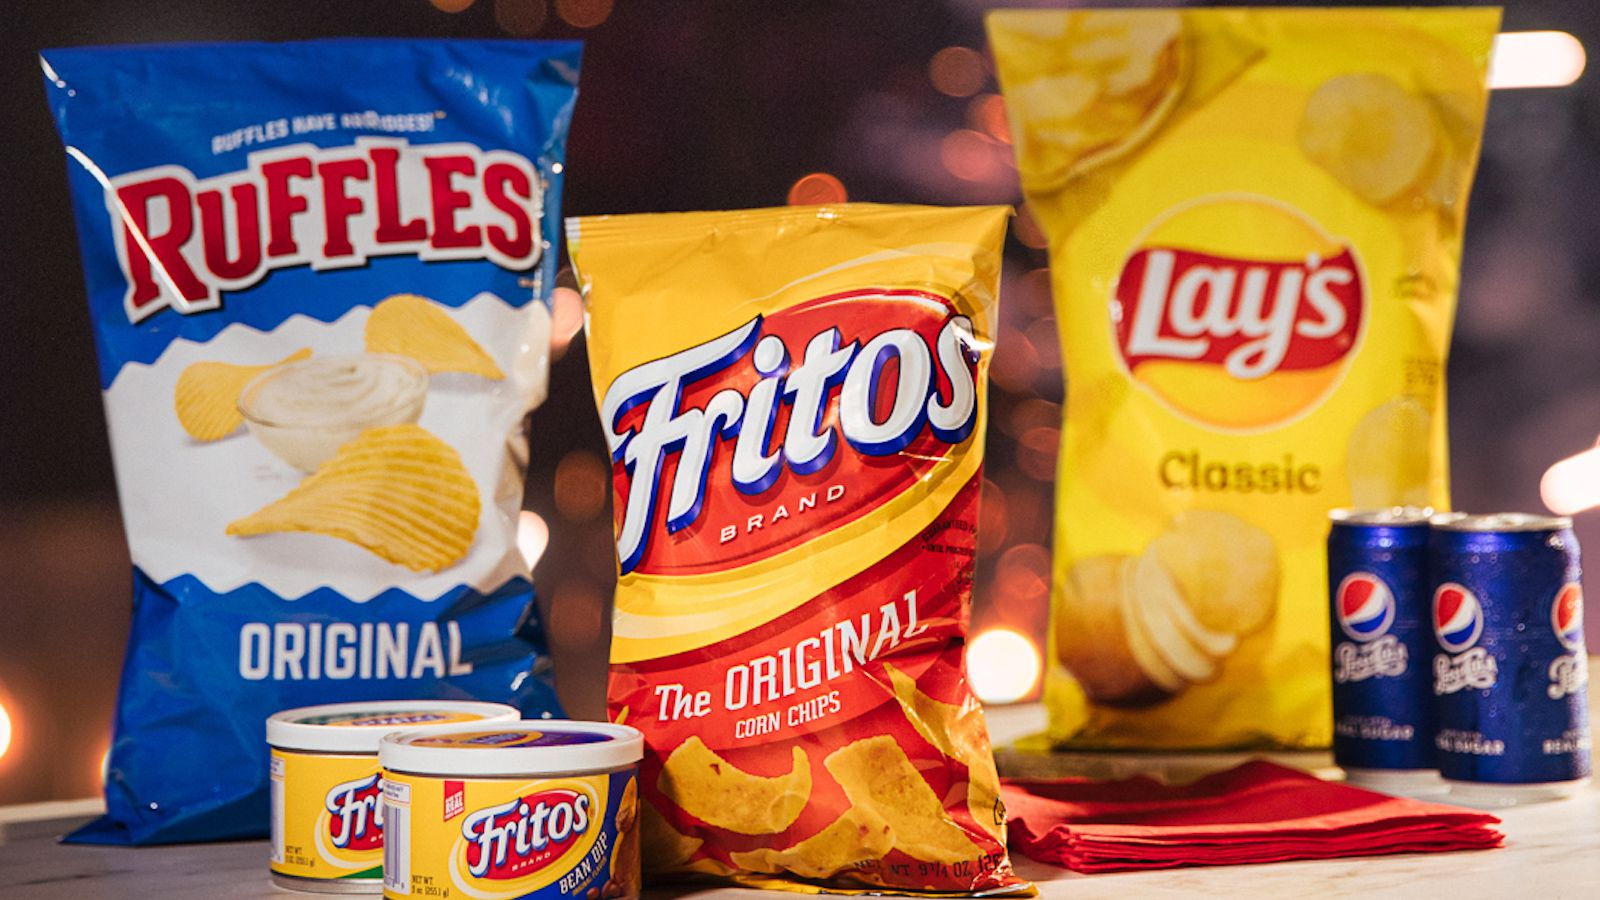 PepsiCo's Frito-Lay division saw double-digit sales growth for brands like Tostitos, Fritos and Cheetos.